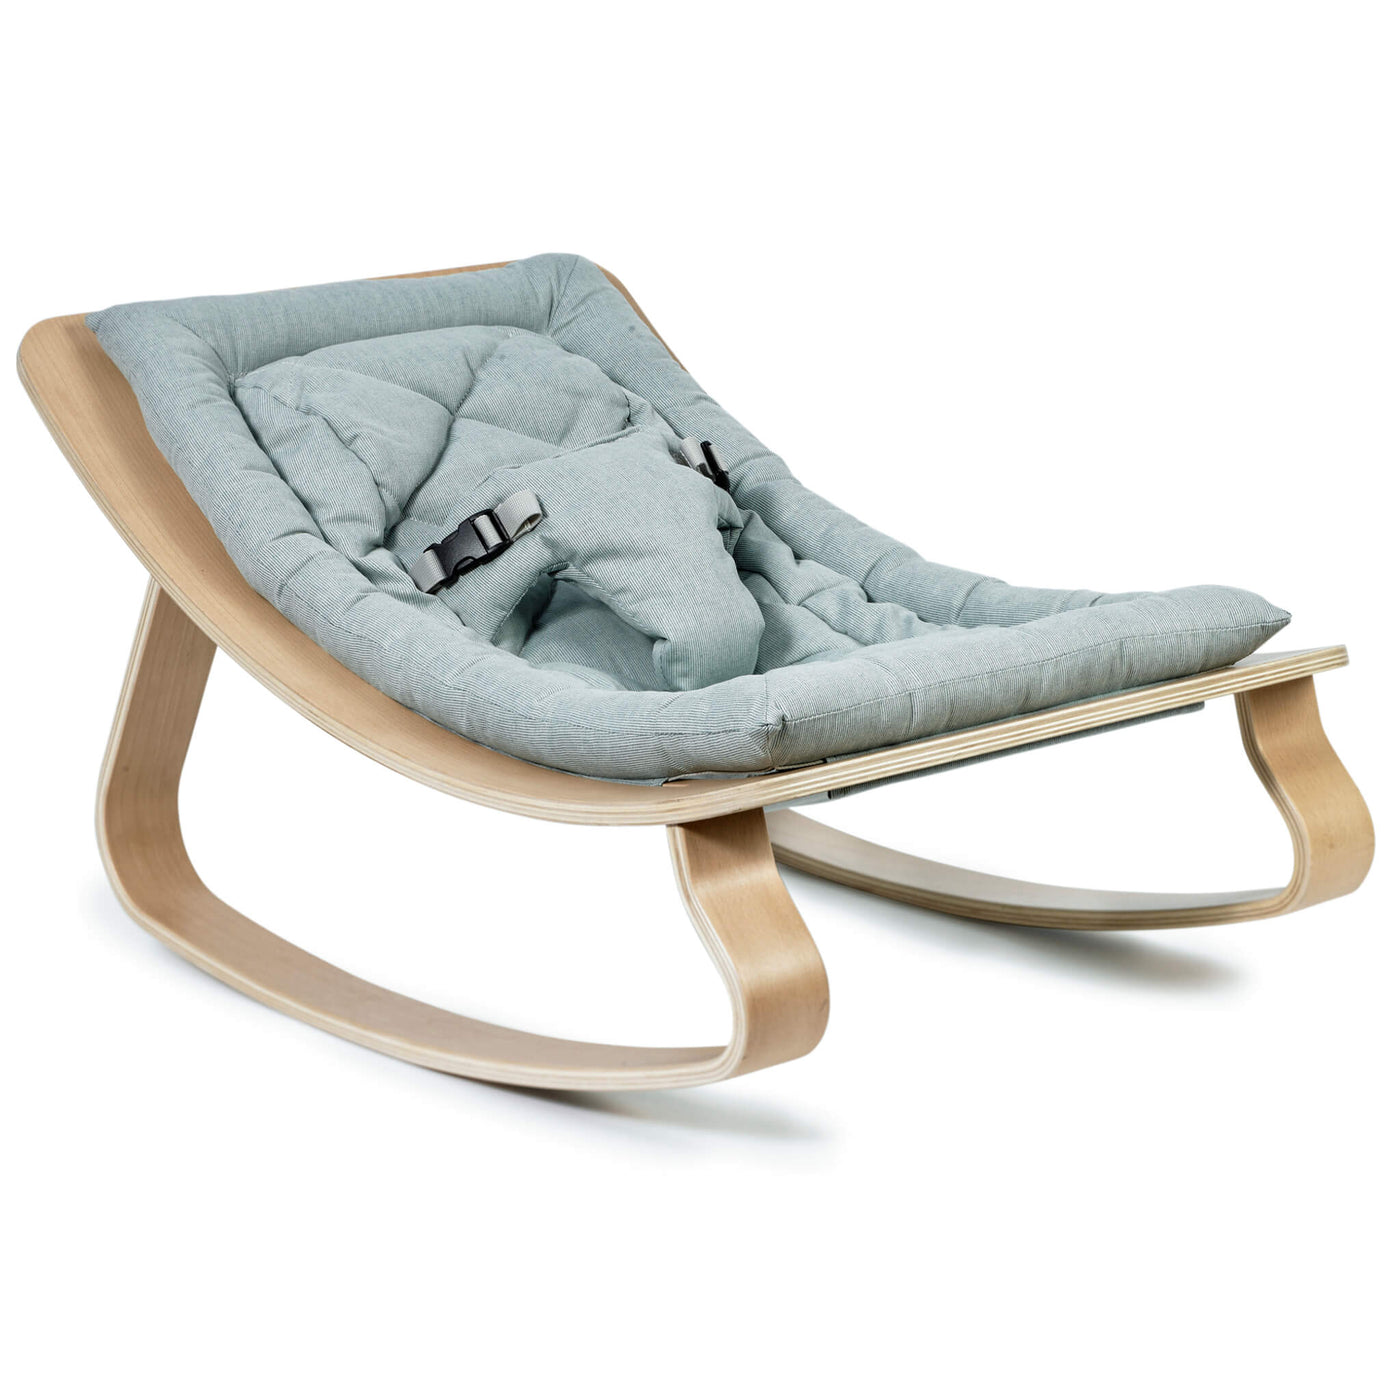 Beech Levo Rocker in Aruba Blue